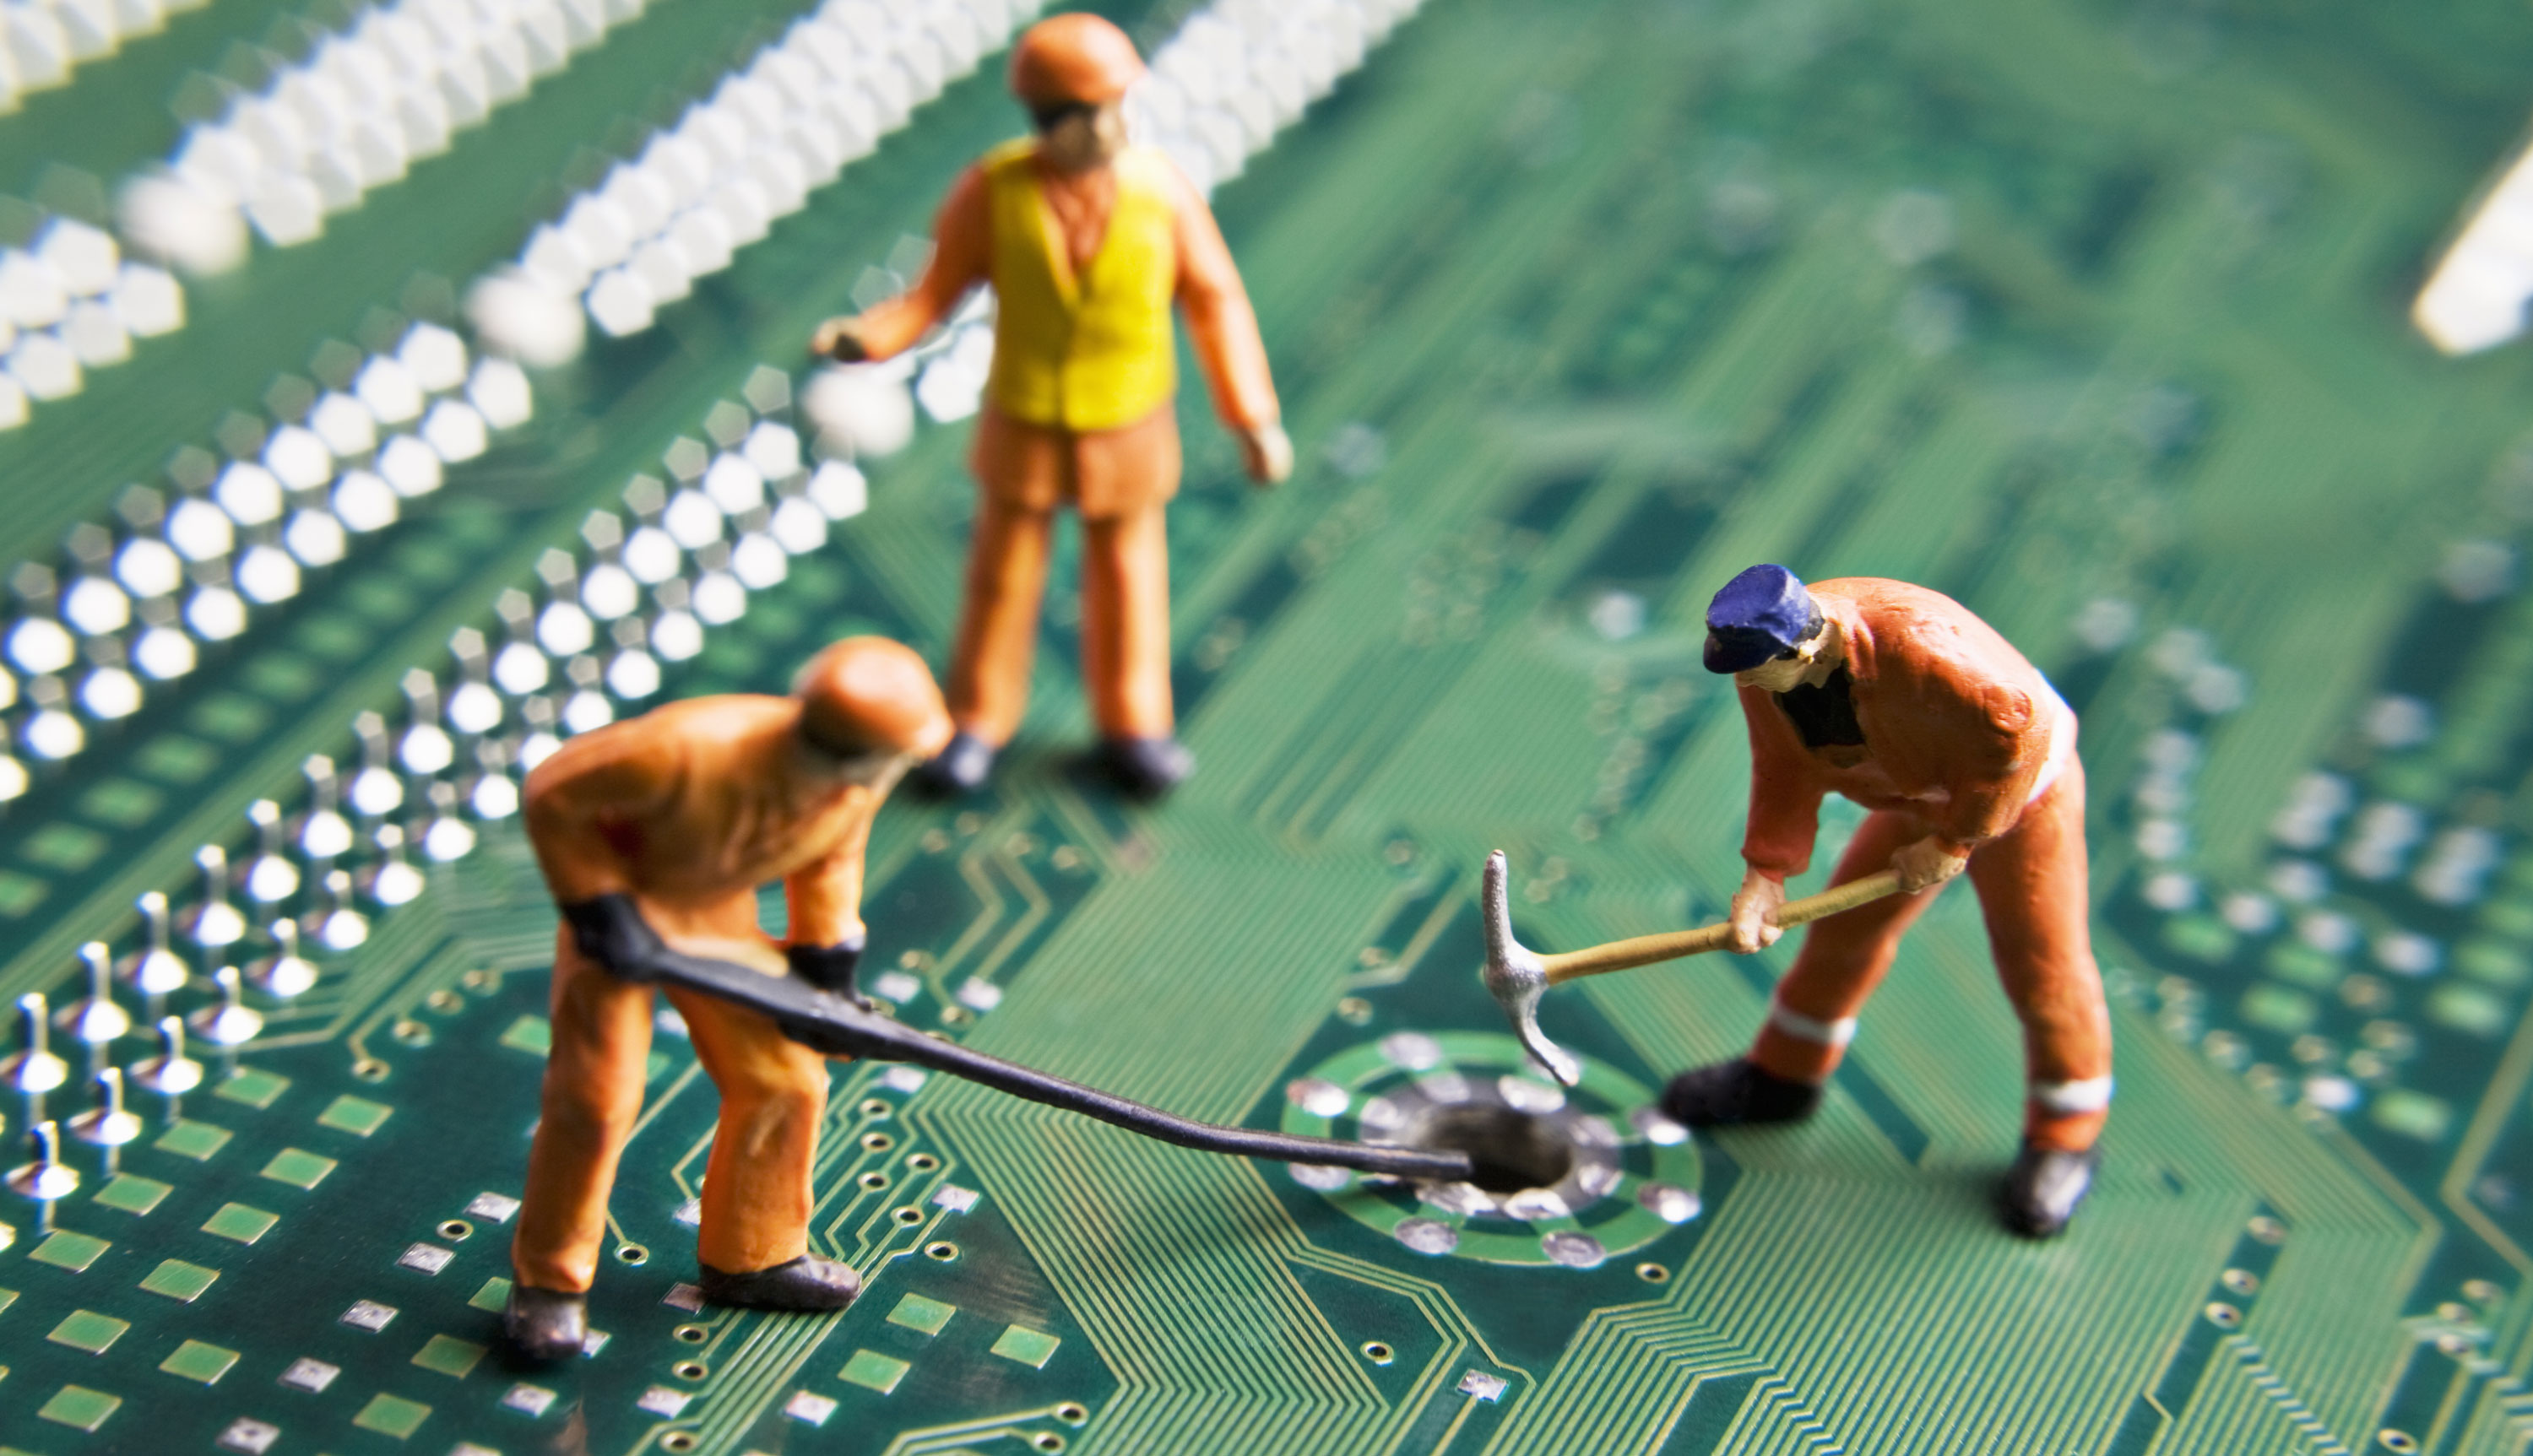 construction figurines work on a circuit board